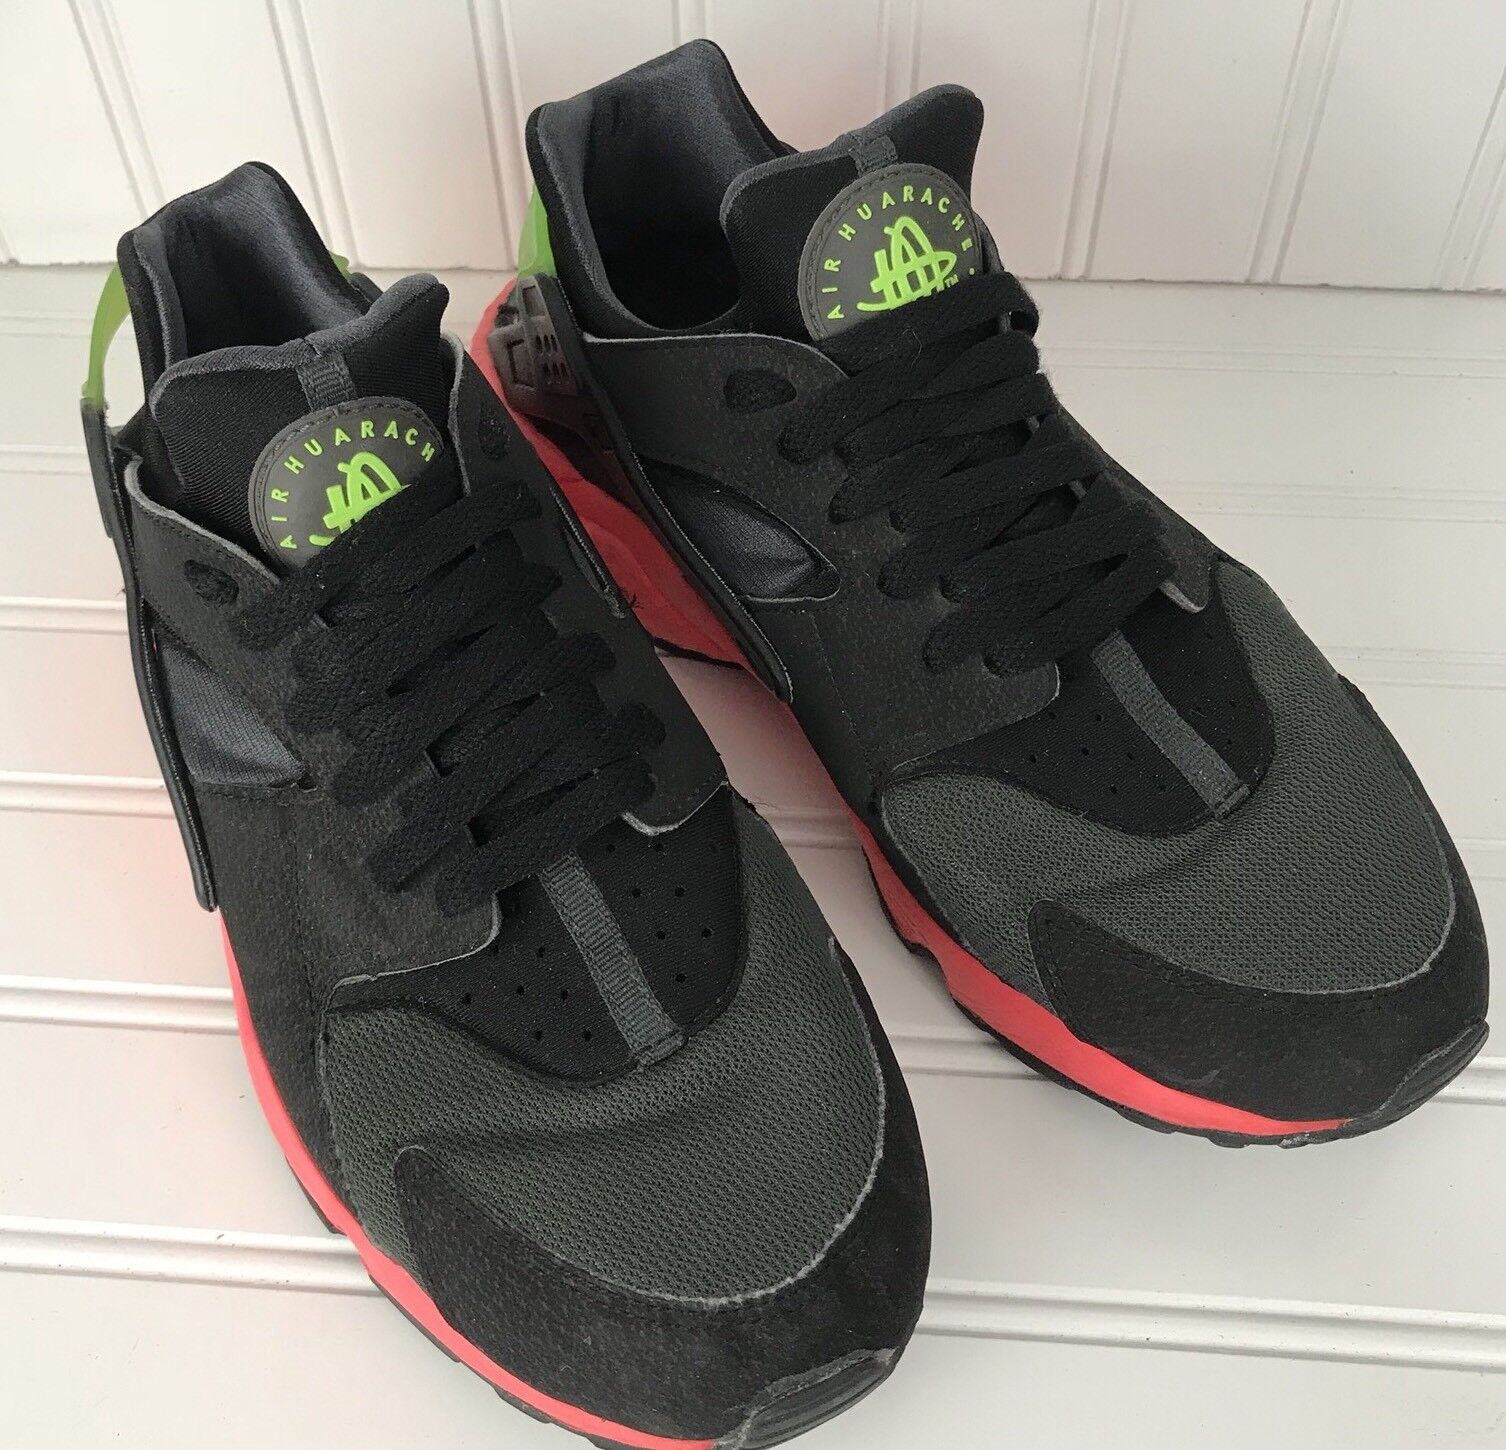 0cc15ea22a6 Nike Air Men Men Men Huarache Hyper Punch Size 9 Black Pink 318429-006  8523df